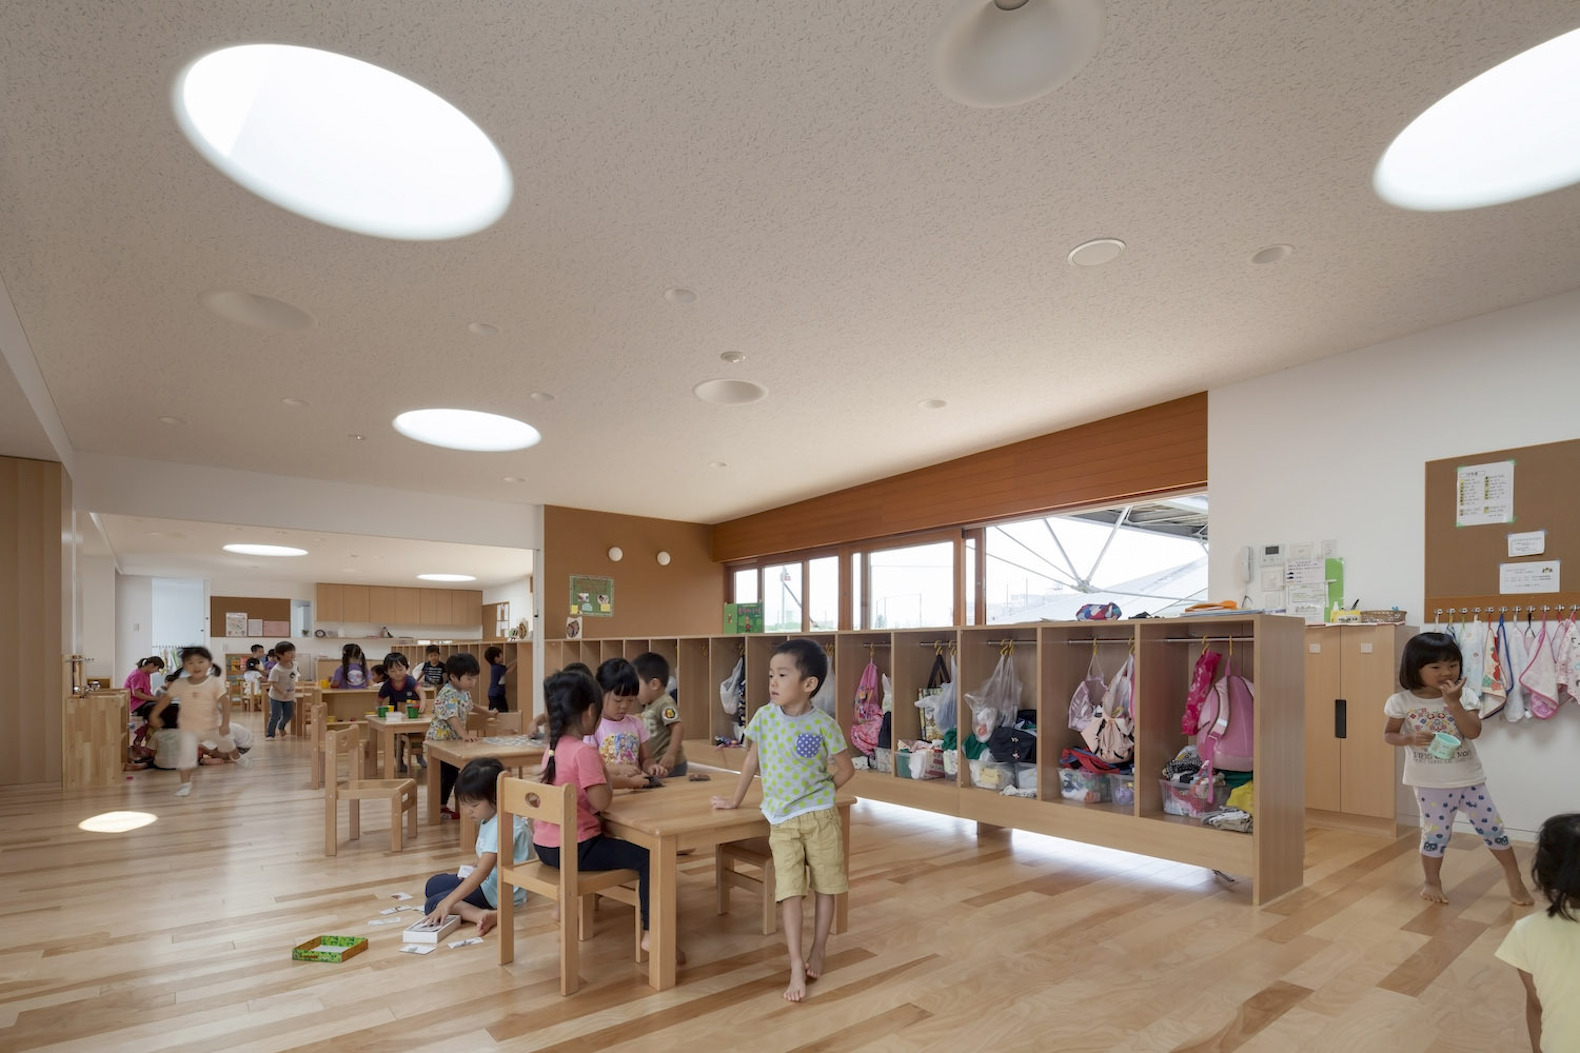 Amanenomori Nursery School by Aisaka Architects' Atelier, Japanese nursery school architecture, Funabashi nursery architecture, solar-powered nursery school, vegetable gardens in nursery schools